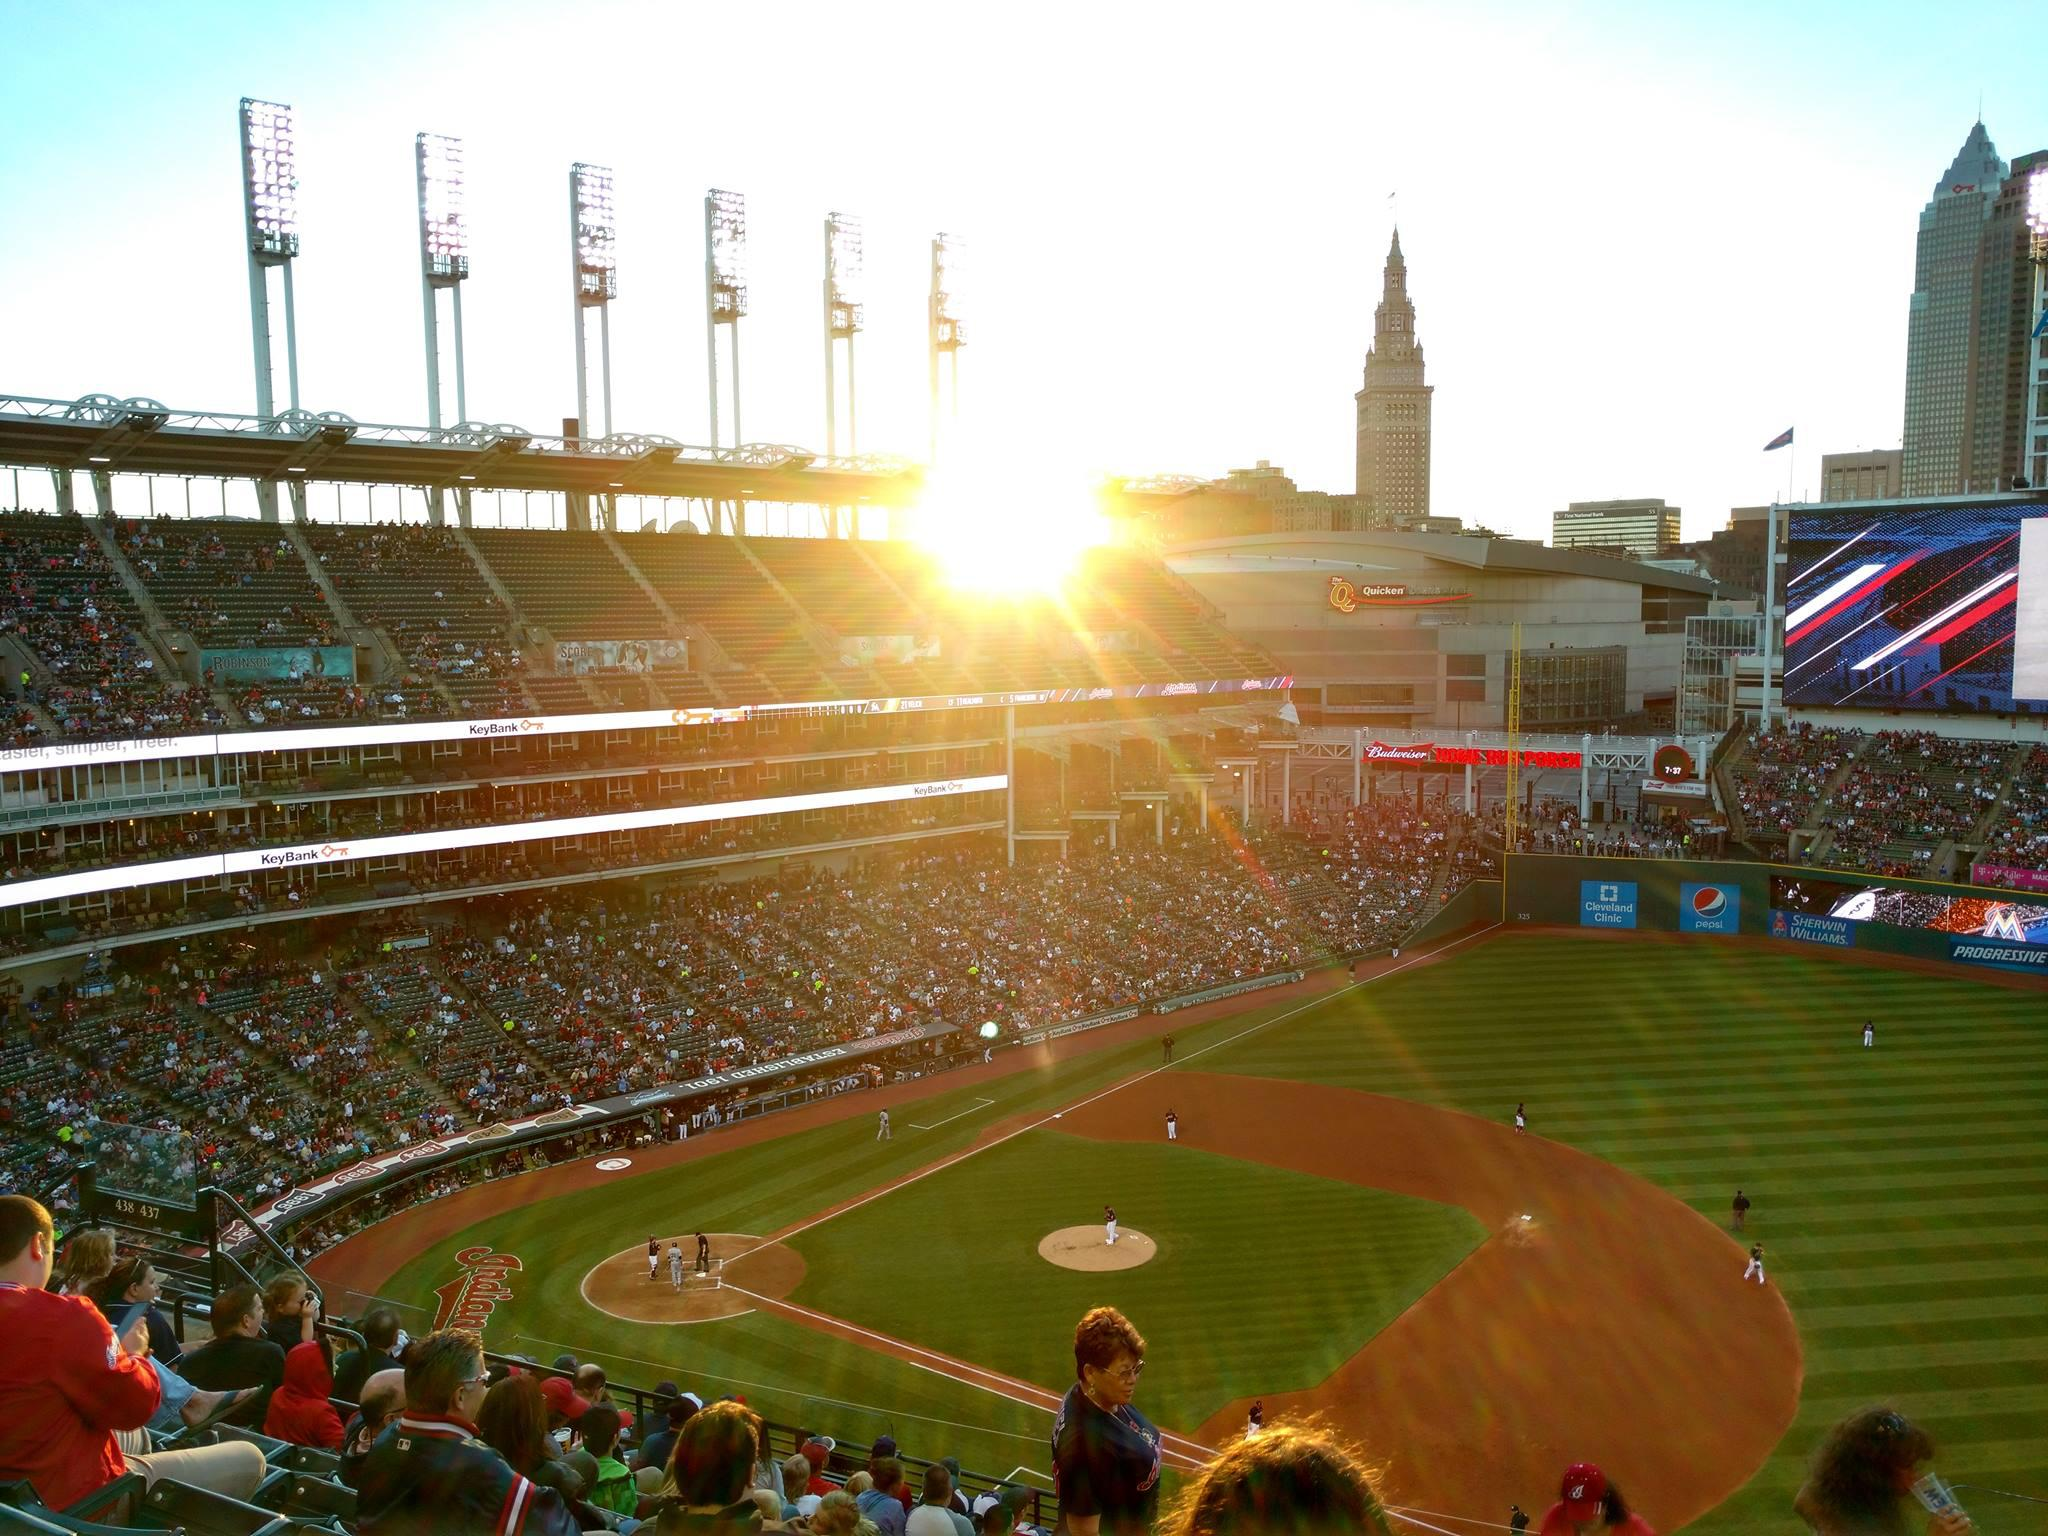 Cleveland Indians vs. Kansas City Royals At Progressive Field